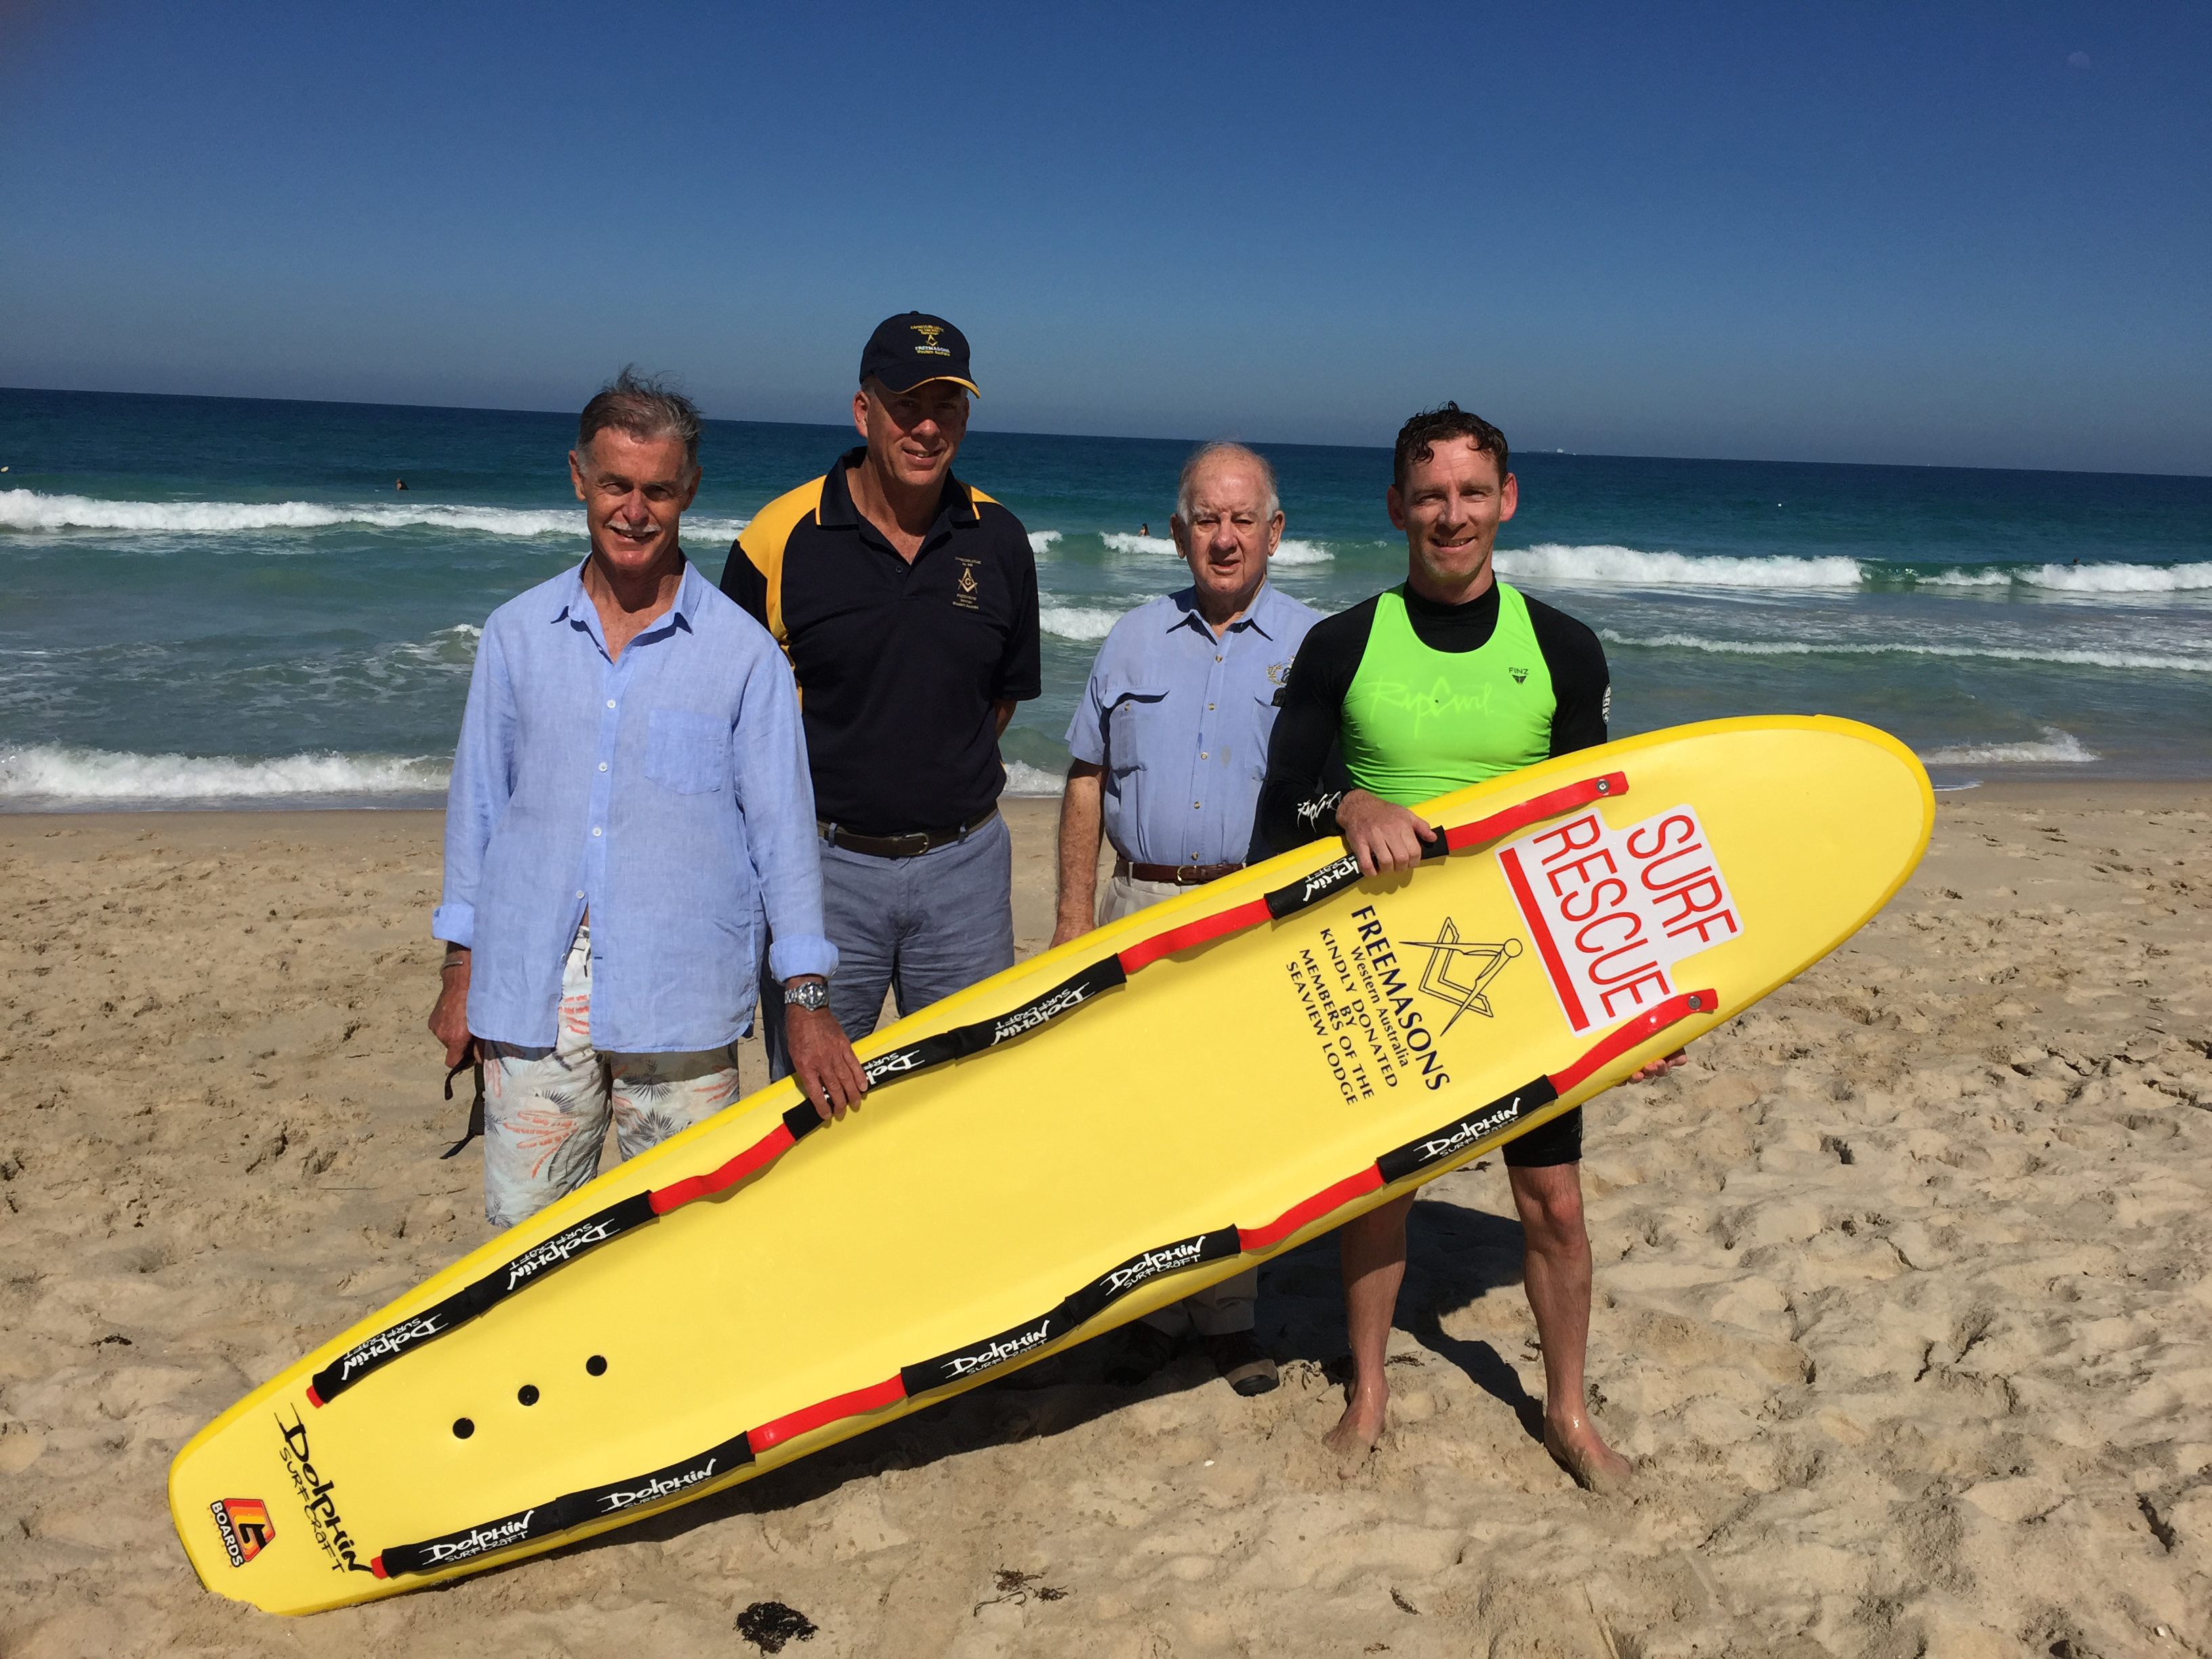 Scarboro Surf Life Saving Club gets new rescue boards